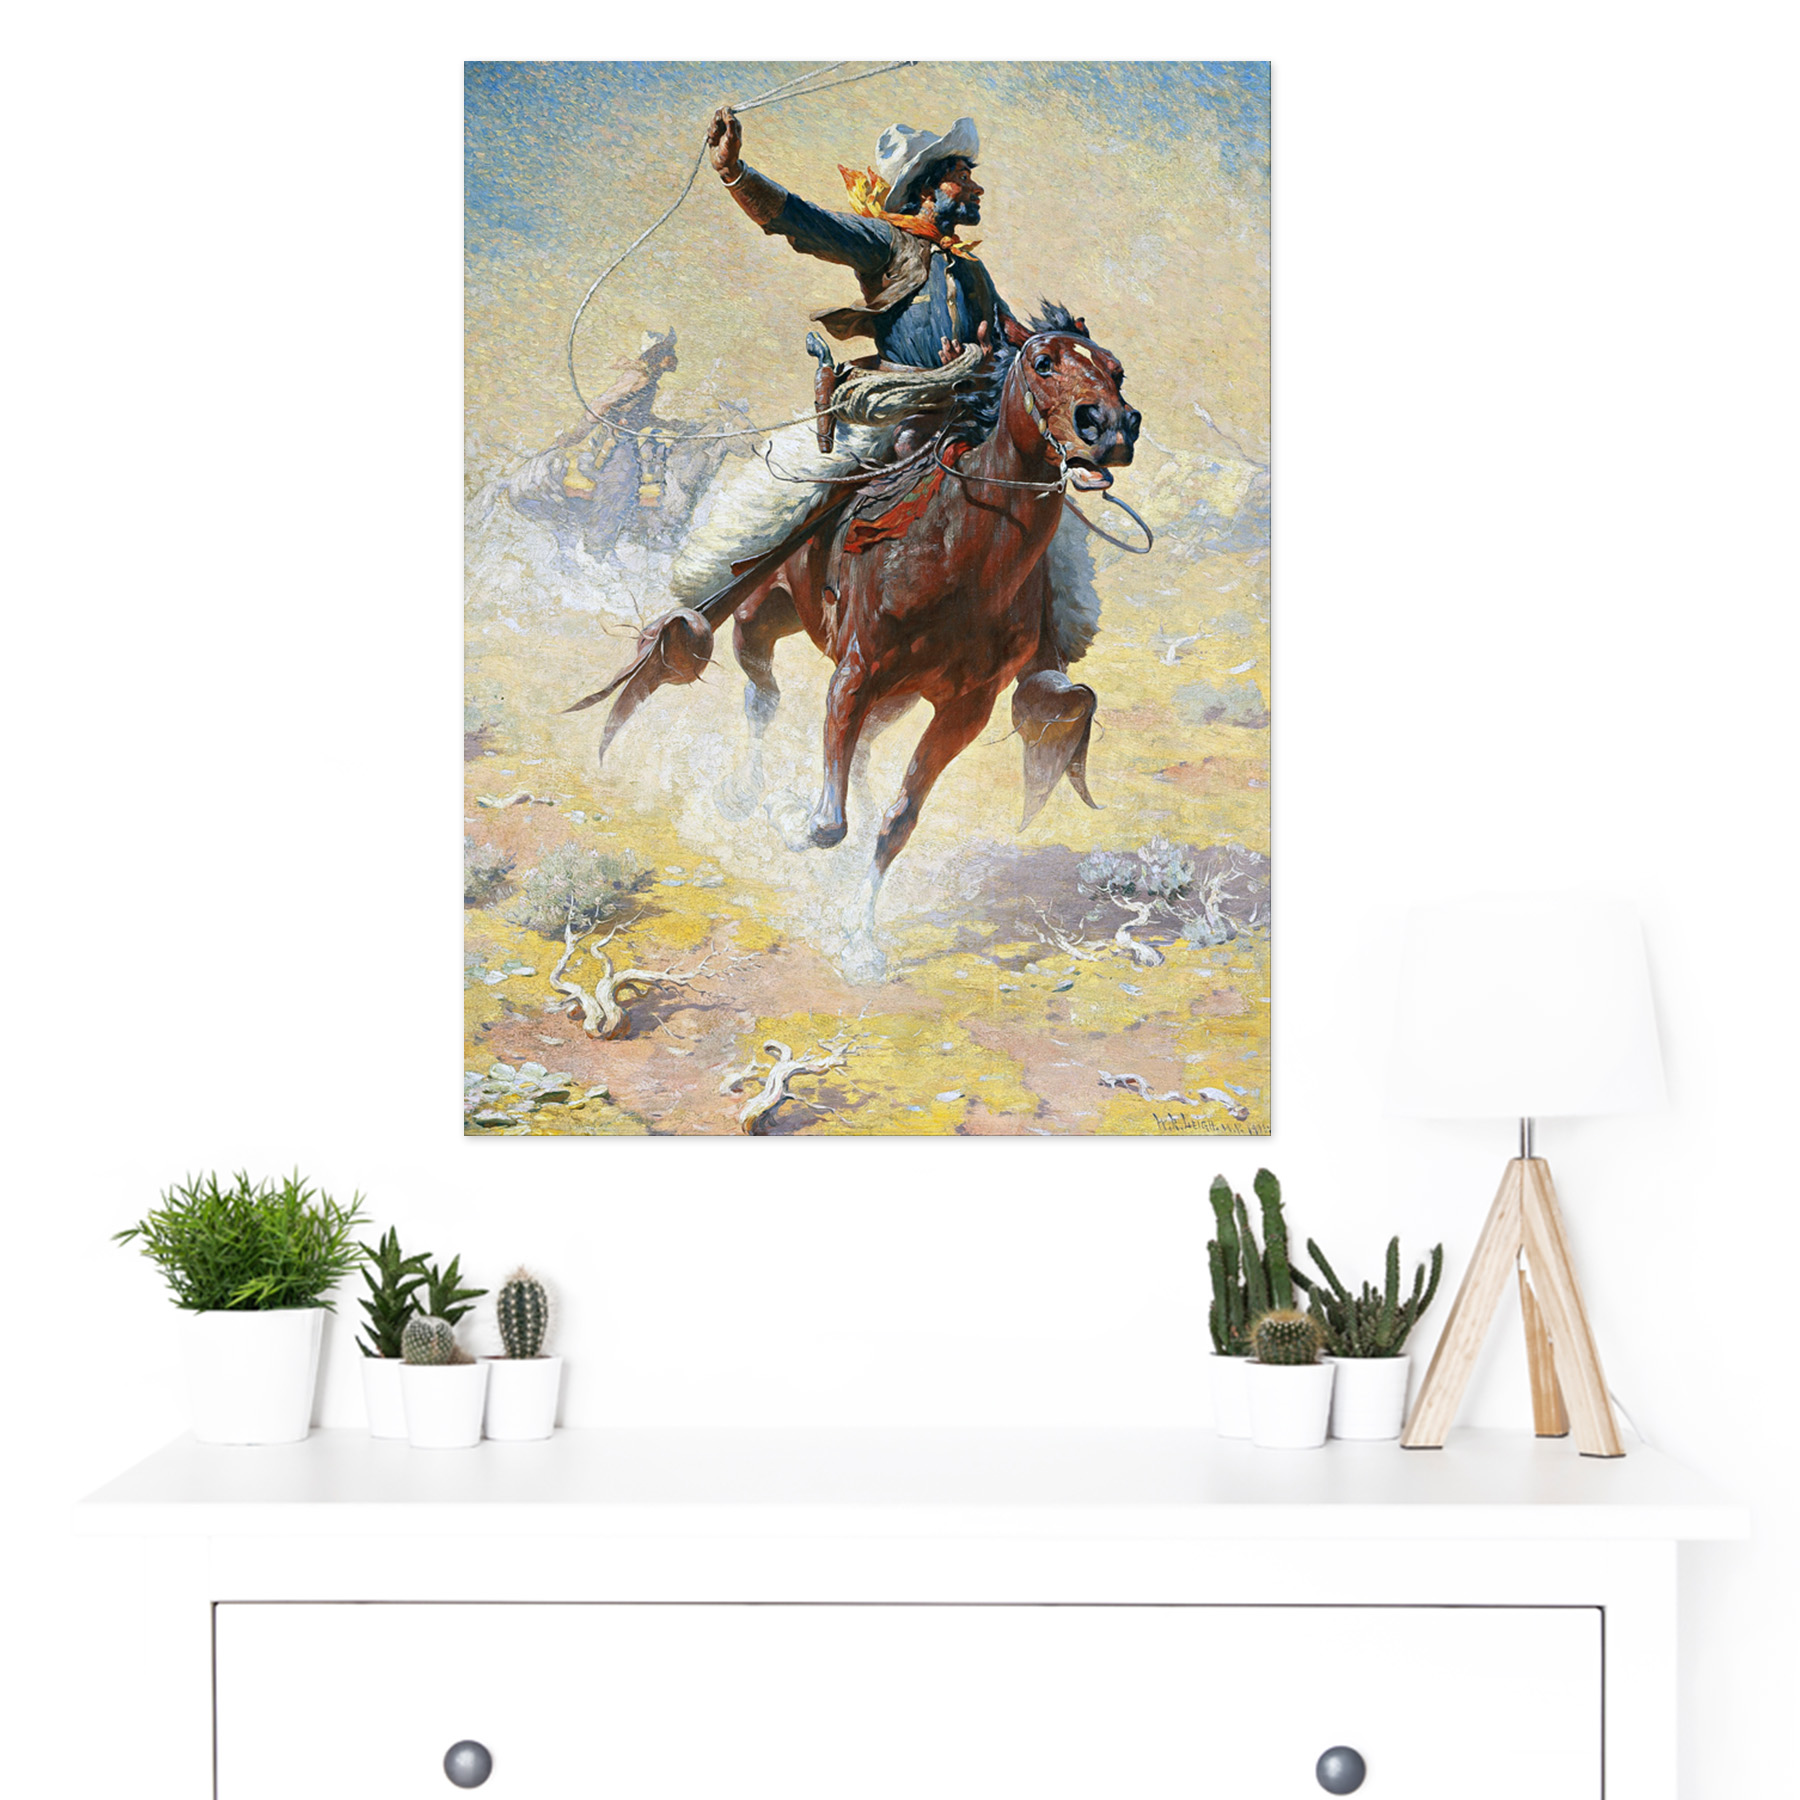 Leigh-The-Roping-Cowboy-Lasso-Horse-Painting-Large-Framed-Art-Print thumbnail 3